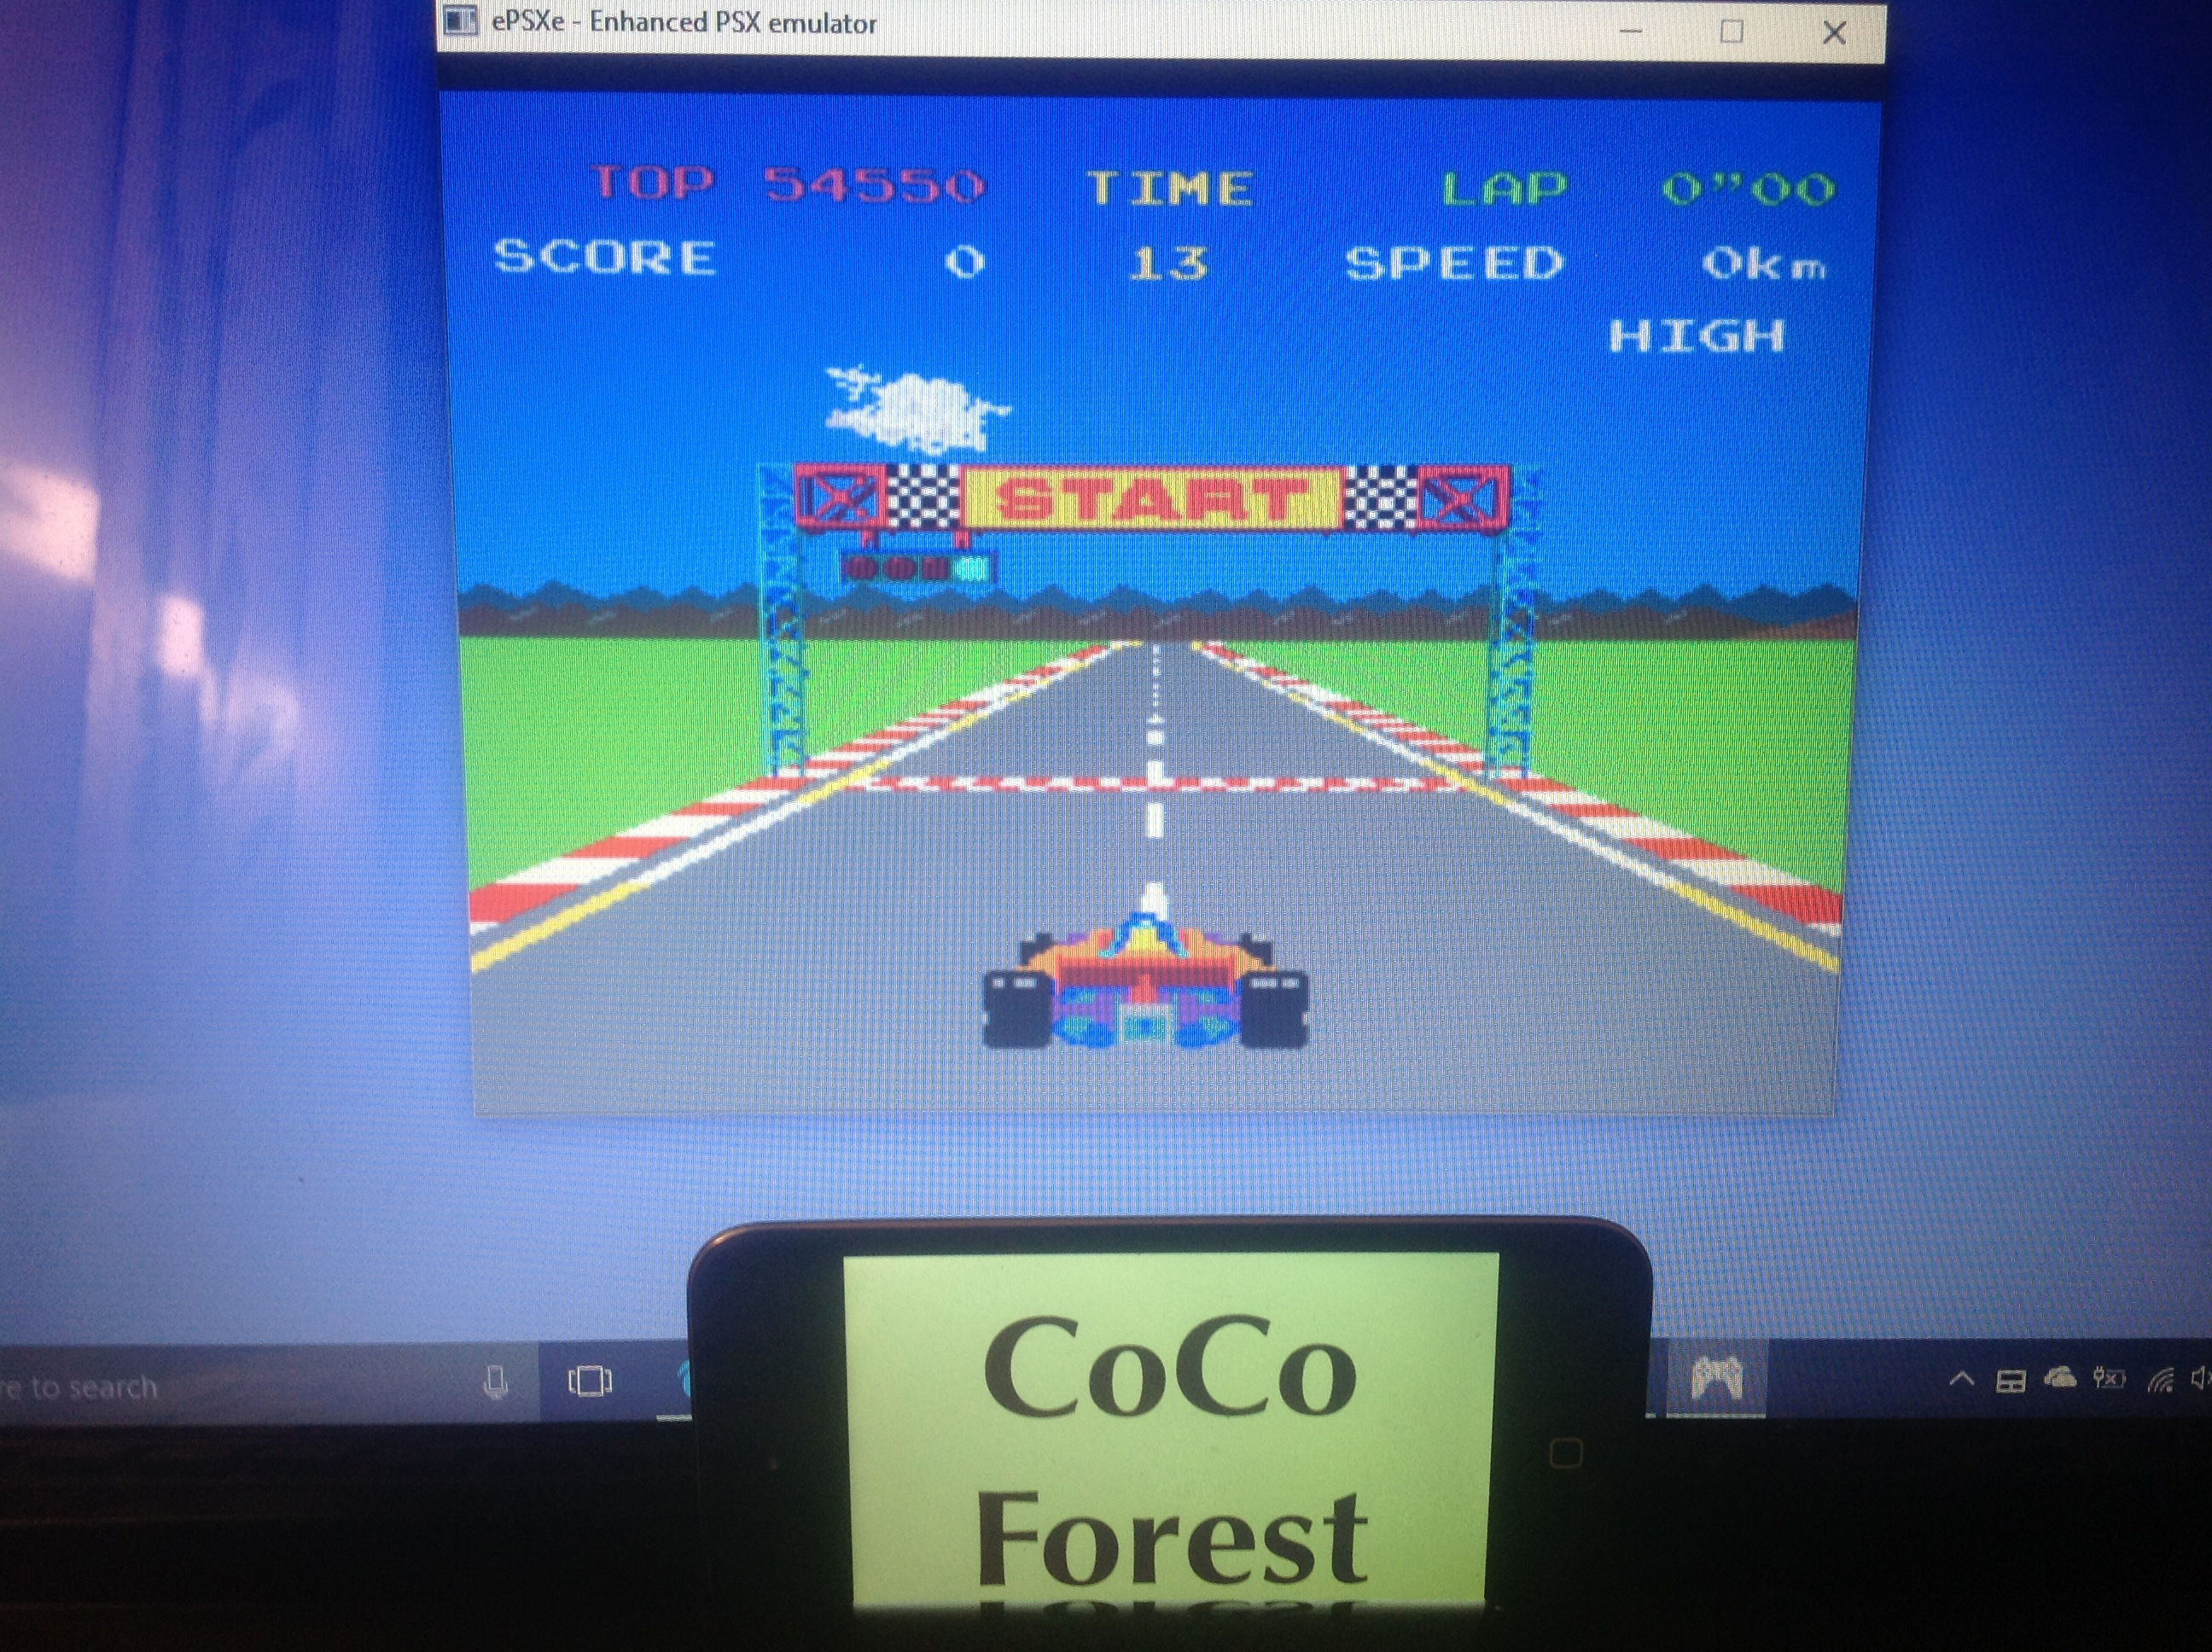 CoCoForest: Namco Museum Vol. 1: Pole Position (Playstation 1 Emulated) 54,550 points on 2018-02-01 08:26:58